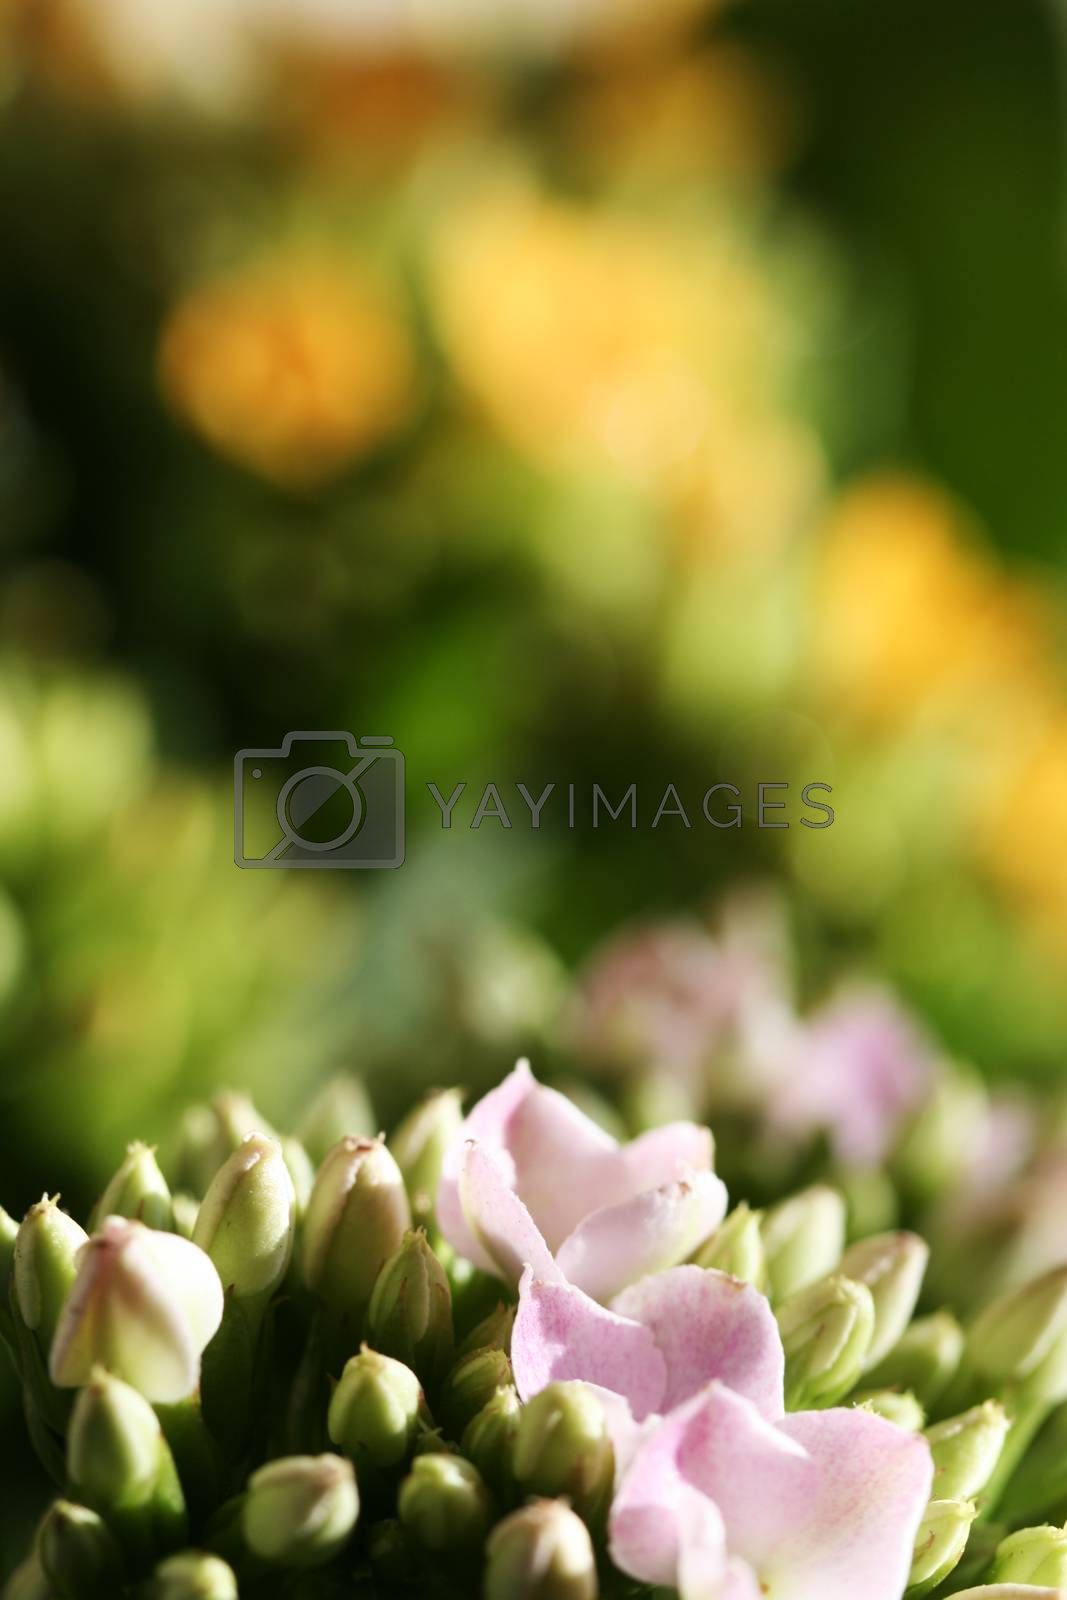 Royalty free image of Beautiful wild flower. by arosoft